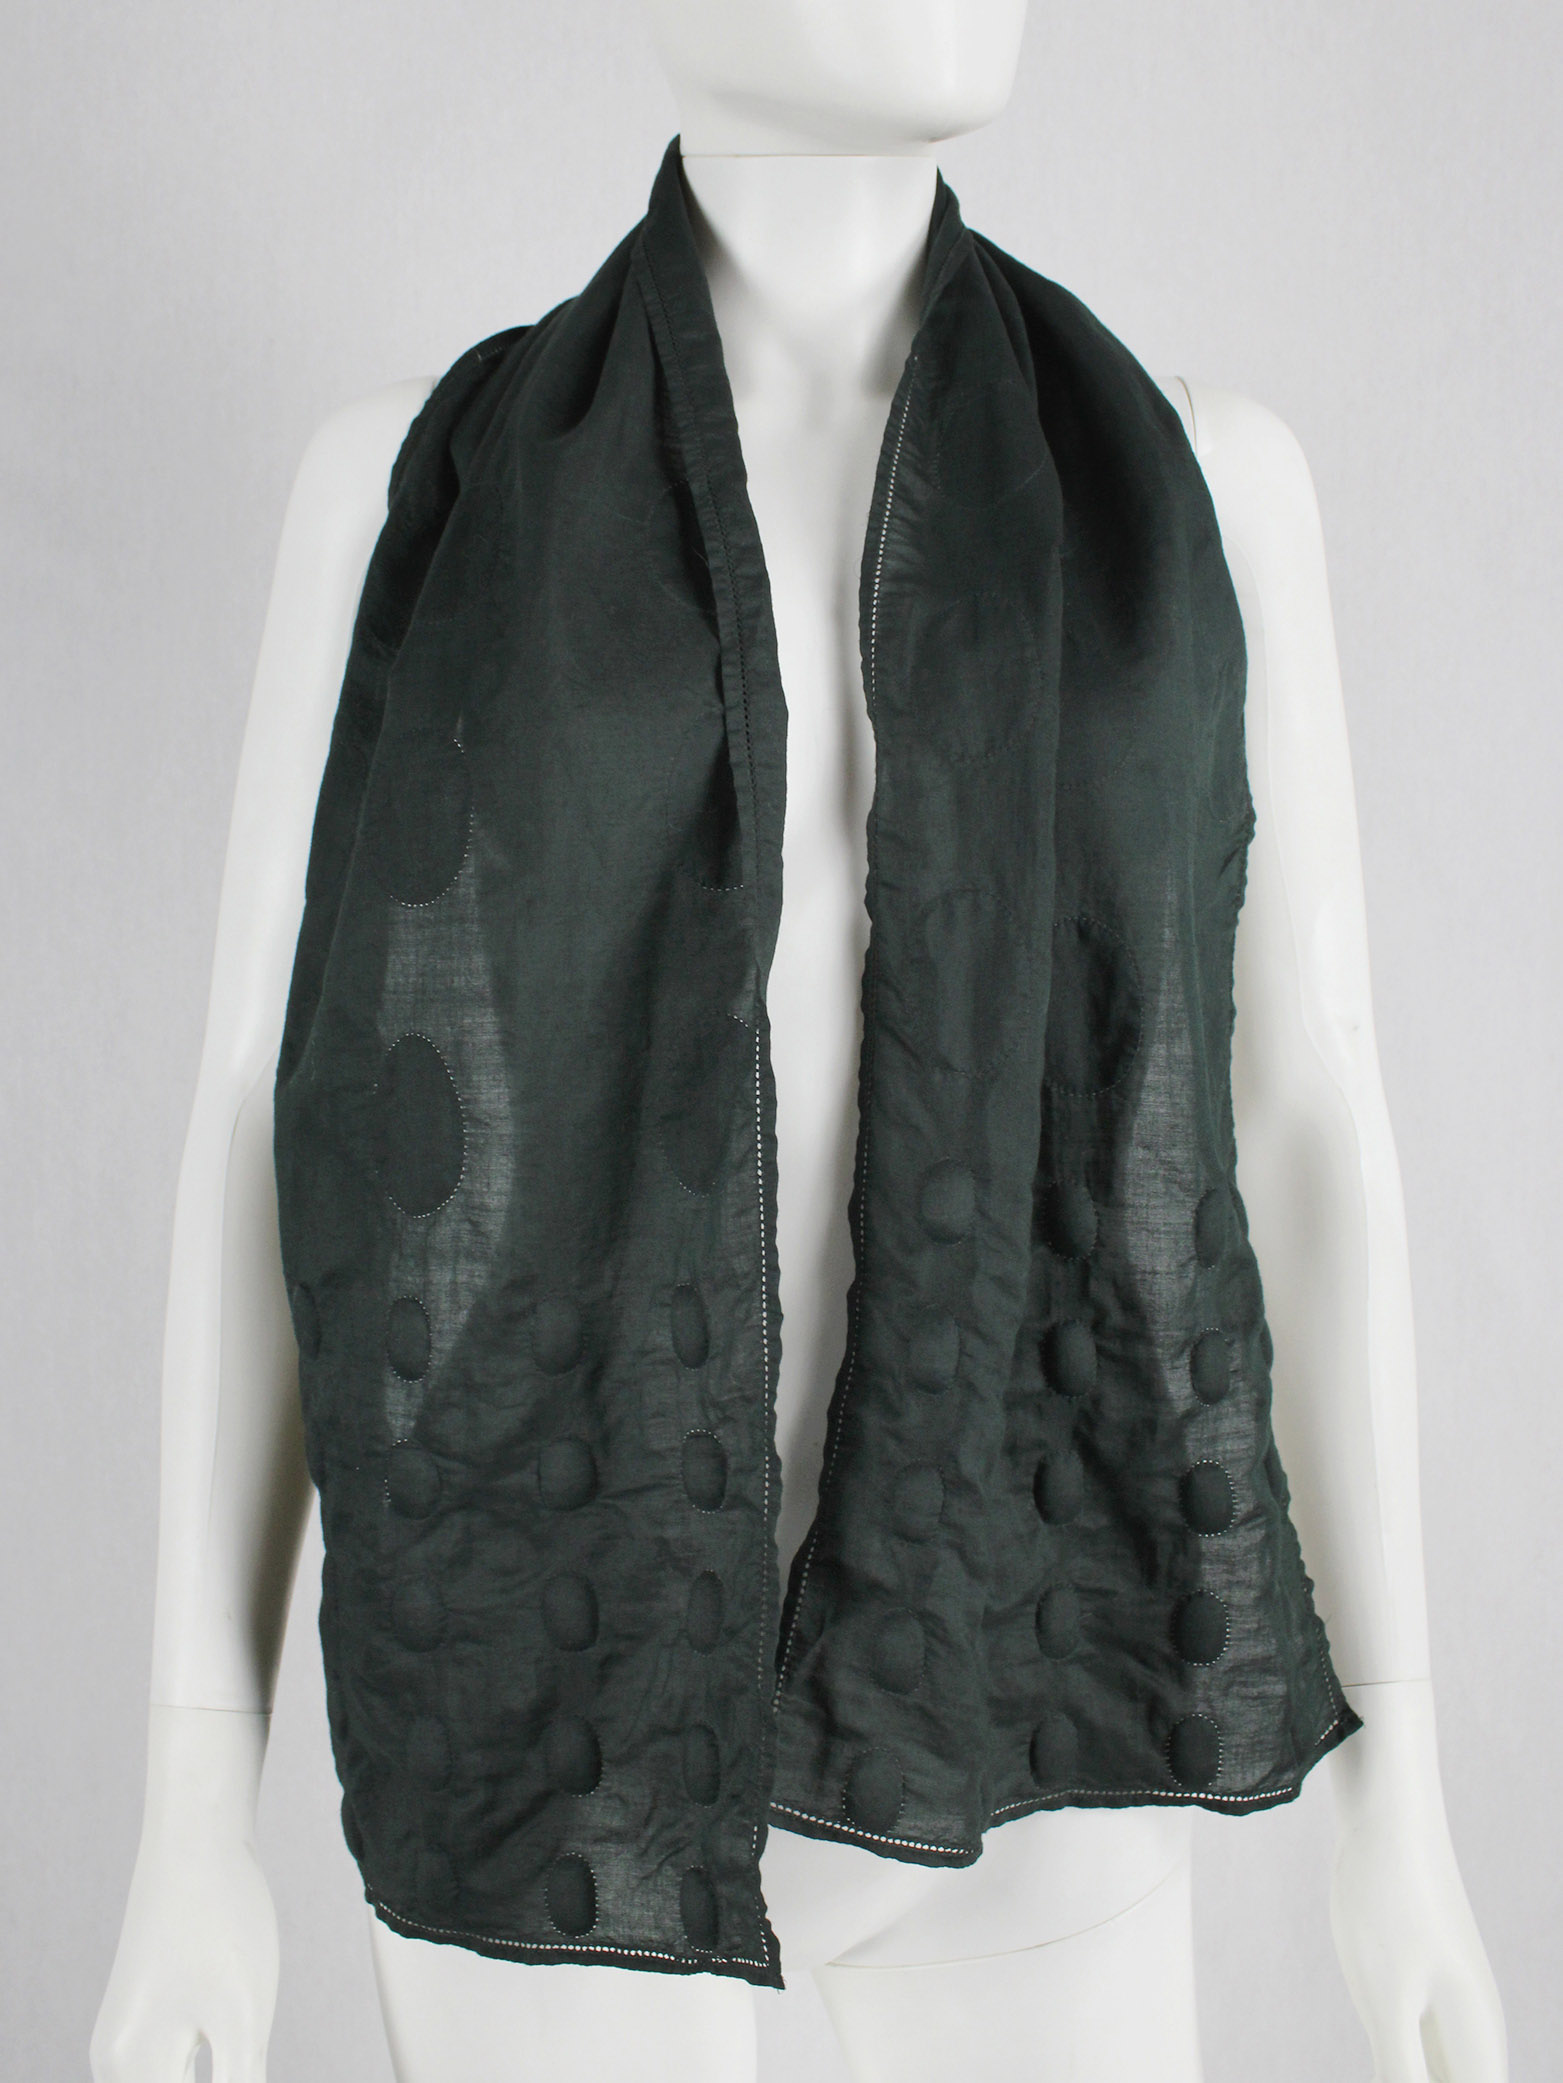 Issey Miyake dark green scarf with 3D padded circles